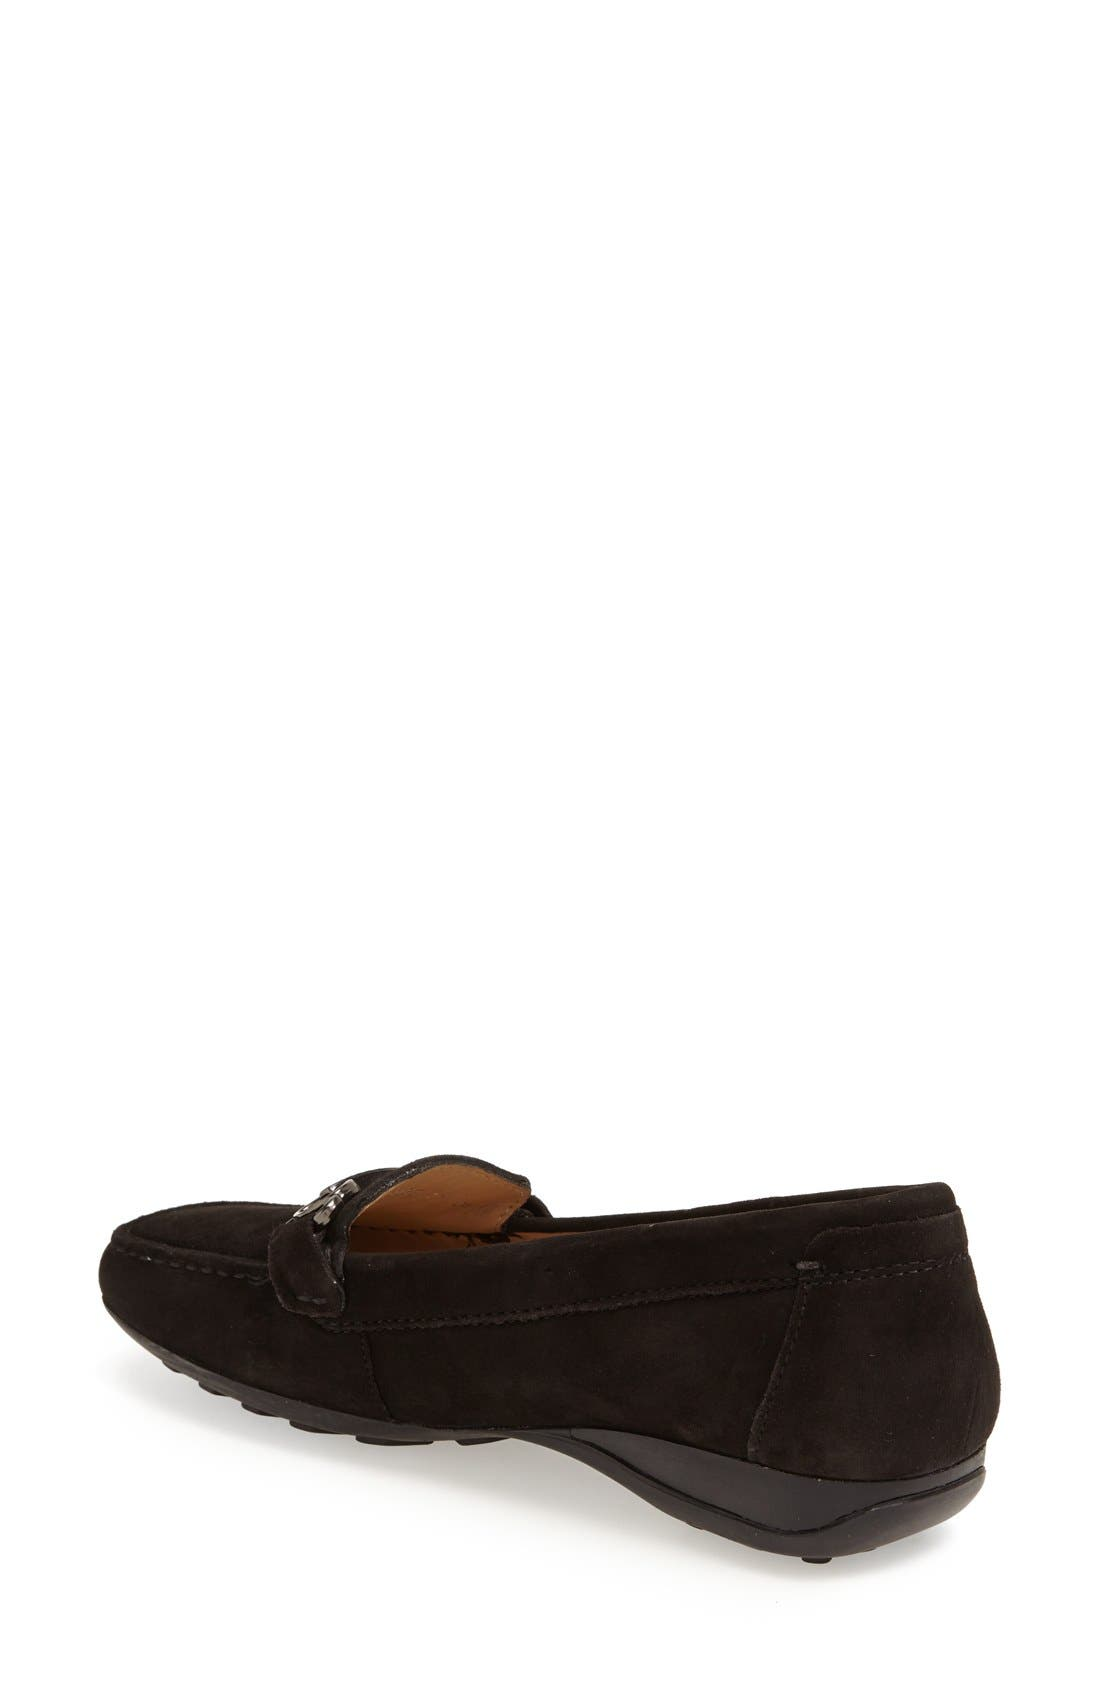 Euro 67 Loafer,                             Alternate thumbnail 12, color,